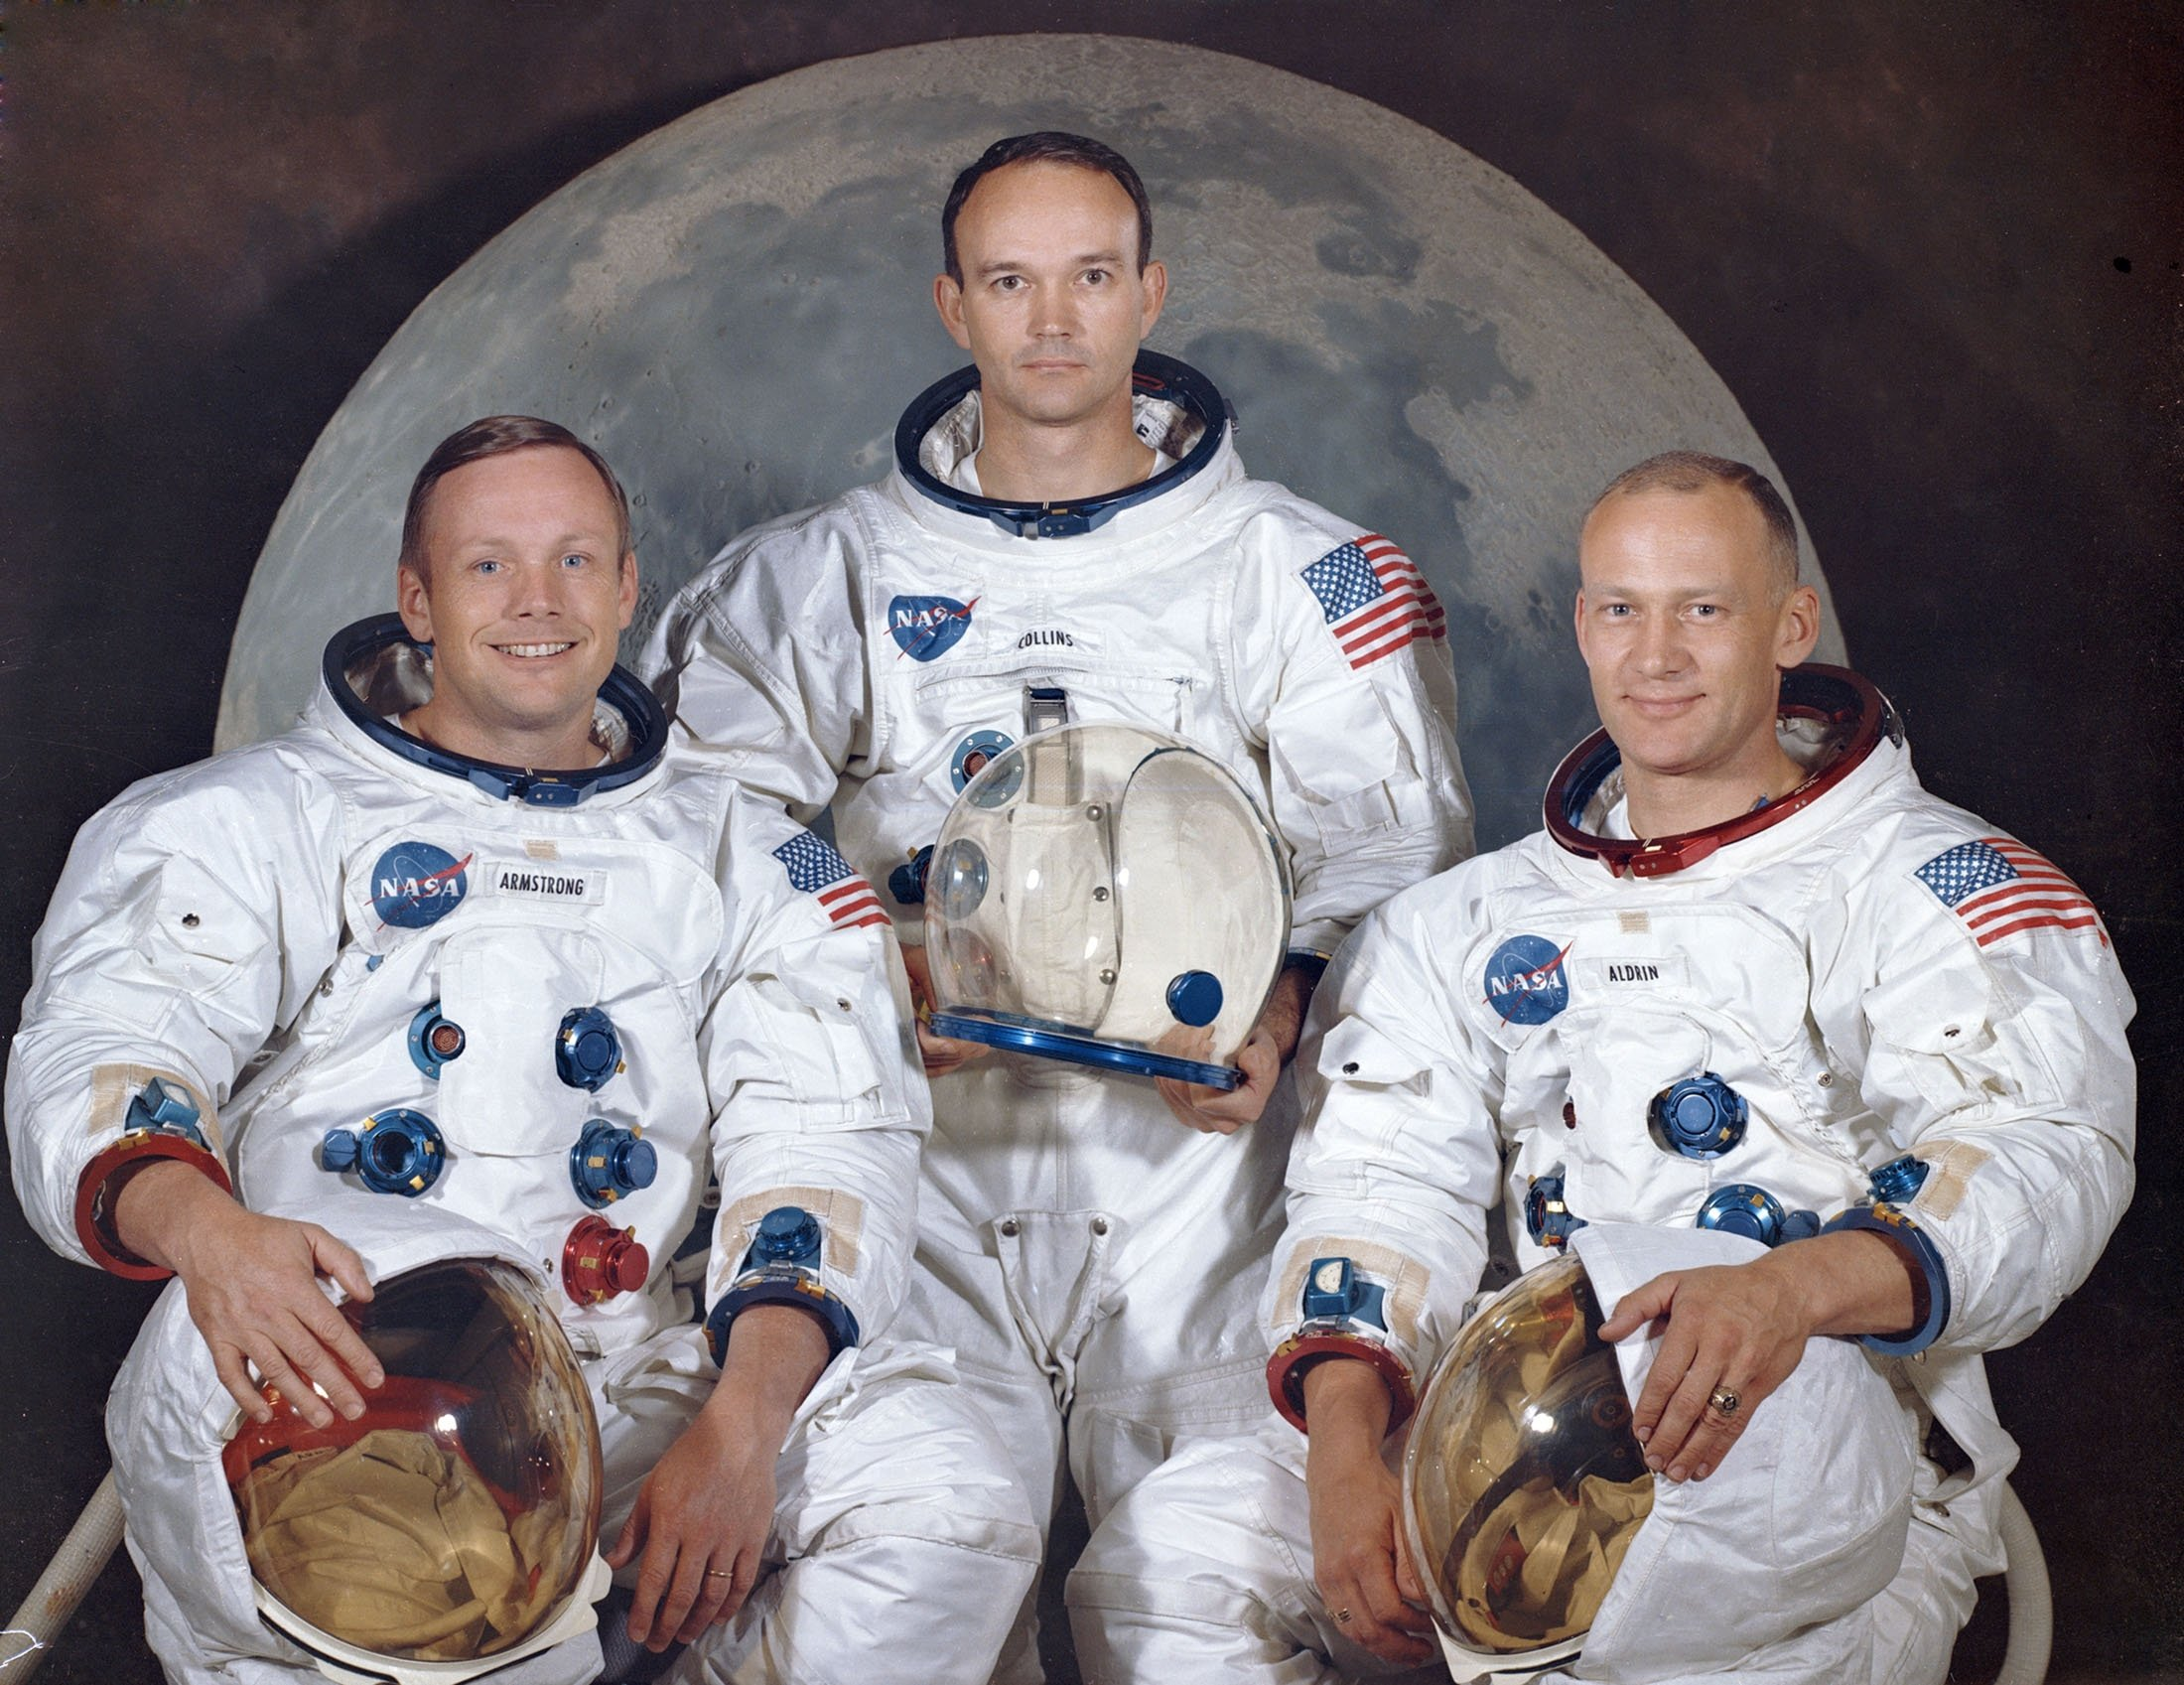 This March 30, 1969 photo shows the crew of the Apollo 11, from left, Neil Armstrong, commander; Michael Collins, module pilot; Edwin E. 'Buzz' Aldrin, lunar module pilot. (NASA via AP)